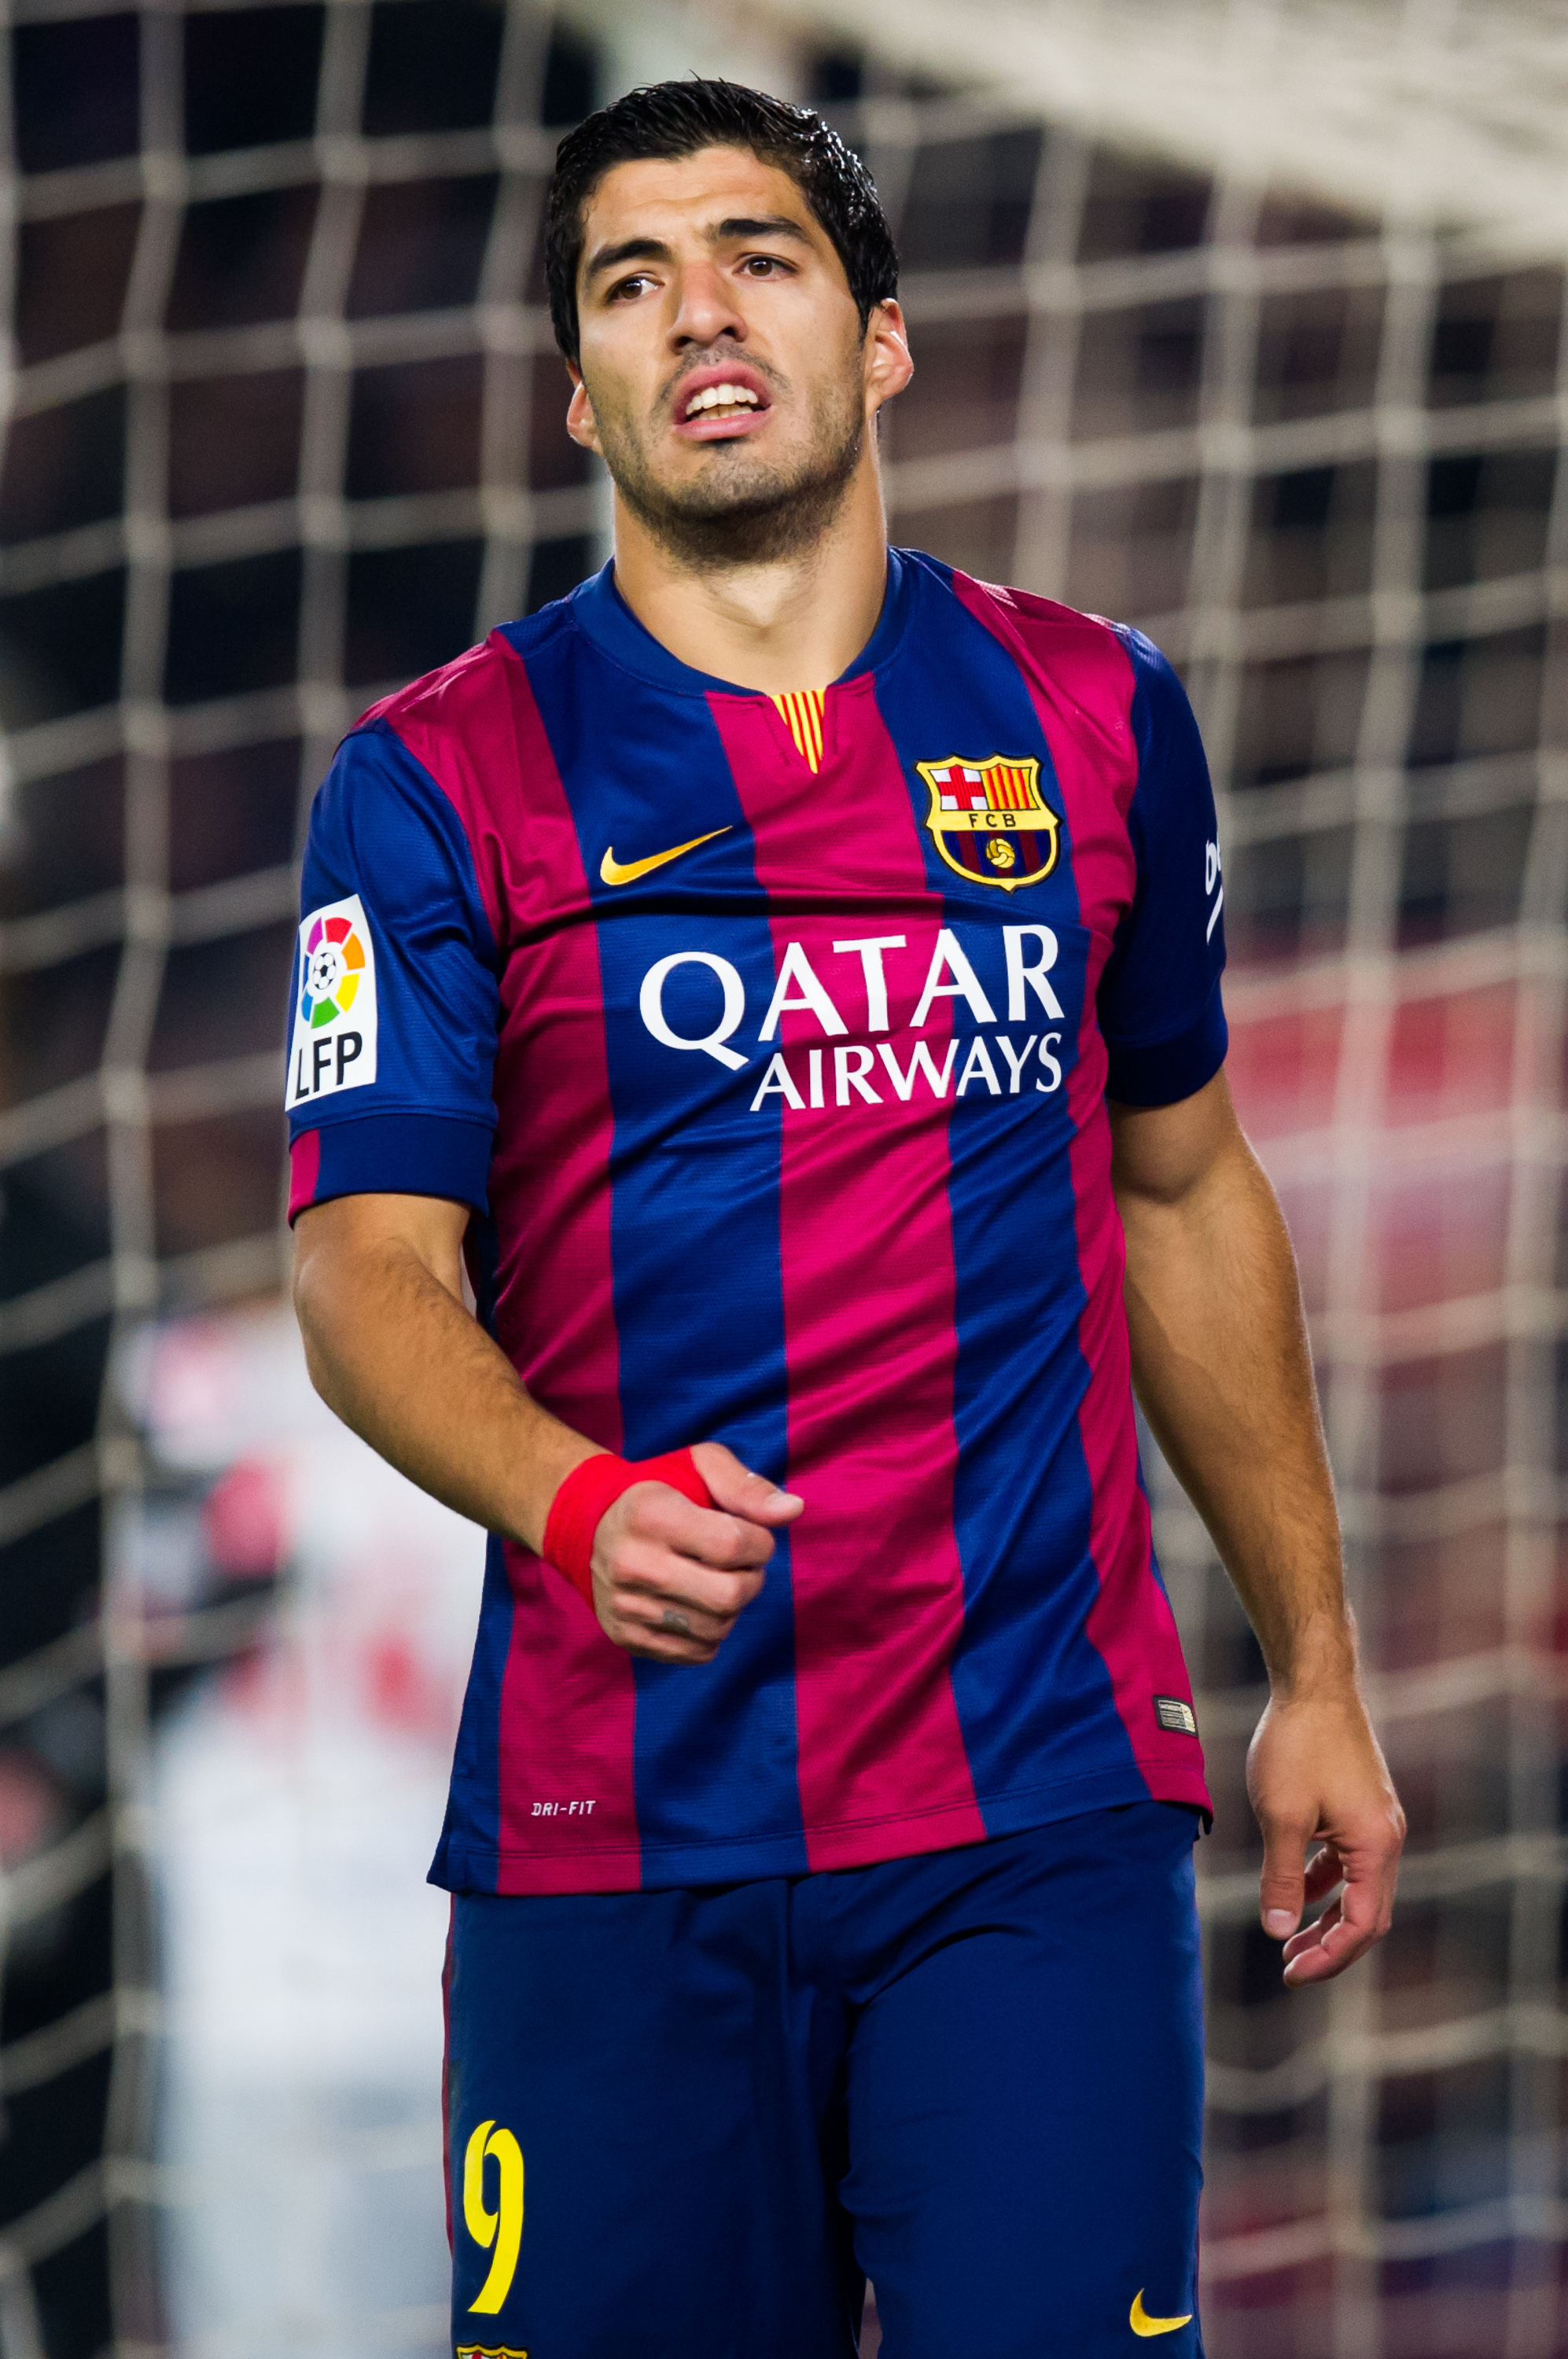 There's no reason to be concerned about how Luis Suárez is performing at Barcelona